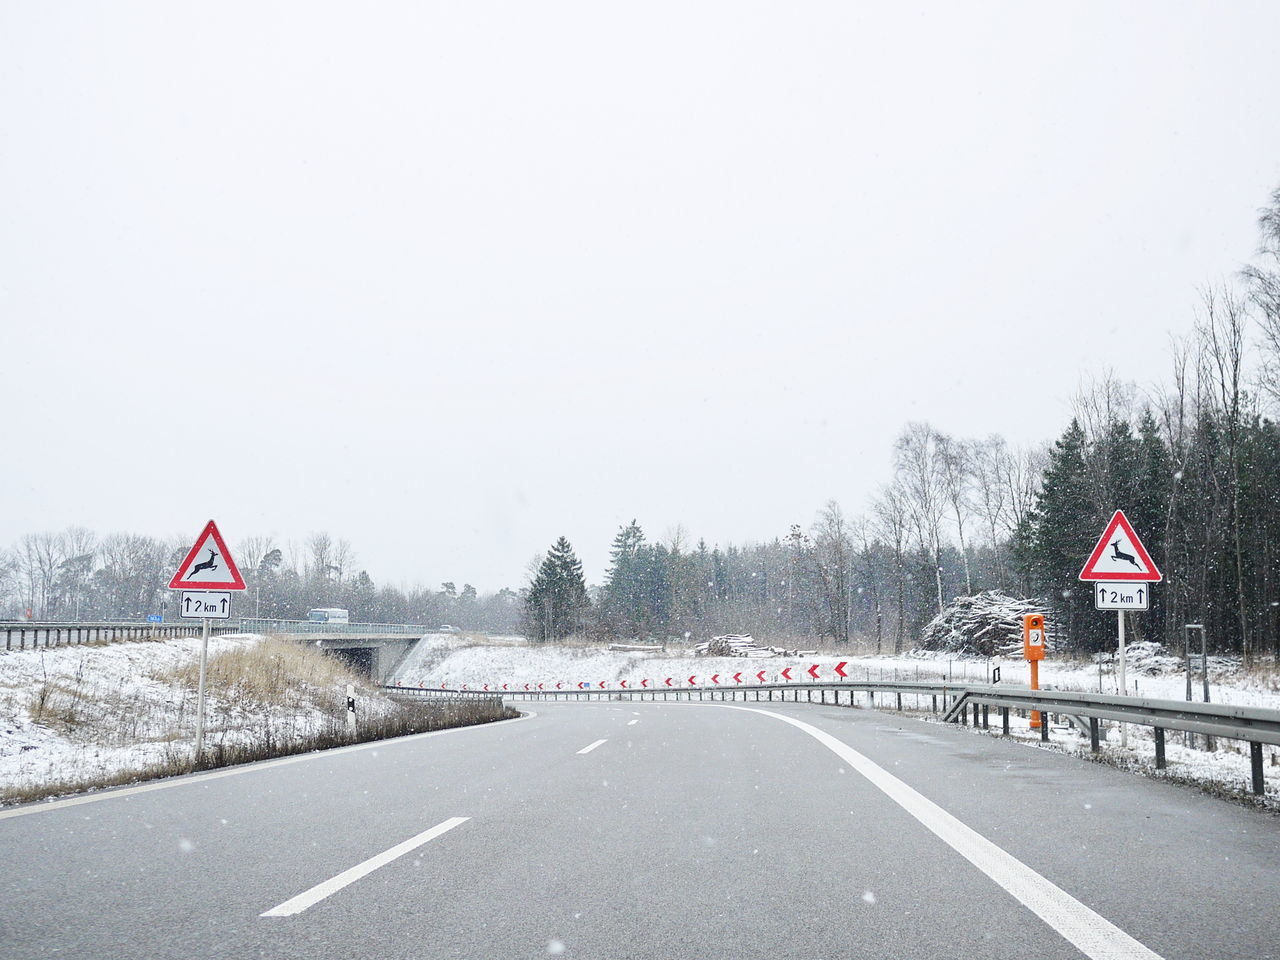 Achtung Cold Temperature Composition Copy Space Deer Crossing Direction Guidance Horizon Over Land Journey Land Vehicle Landscape Leading Outdoors Perspective Remote Road Sign Snow The Way Forward Traffic Transportation Weather Wild Wildwechsel Winter